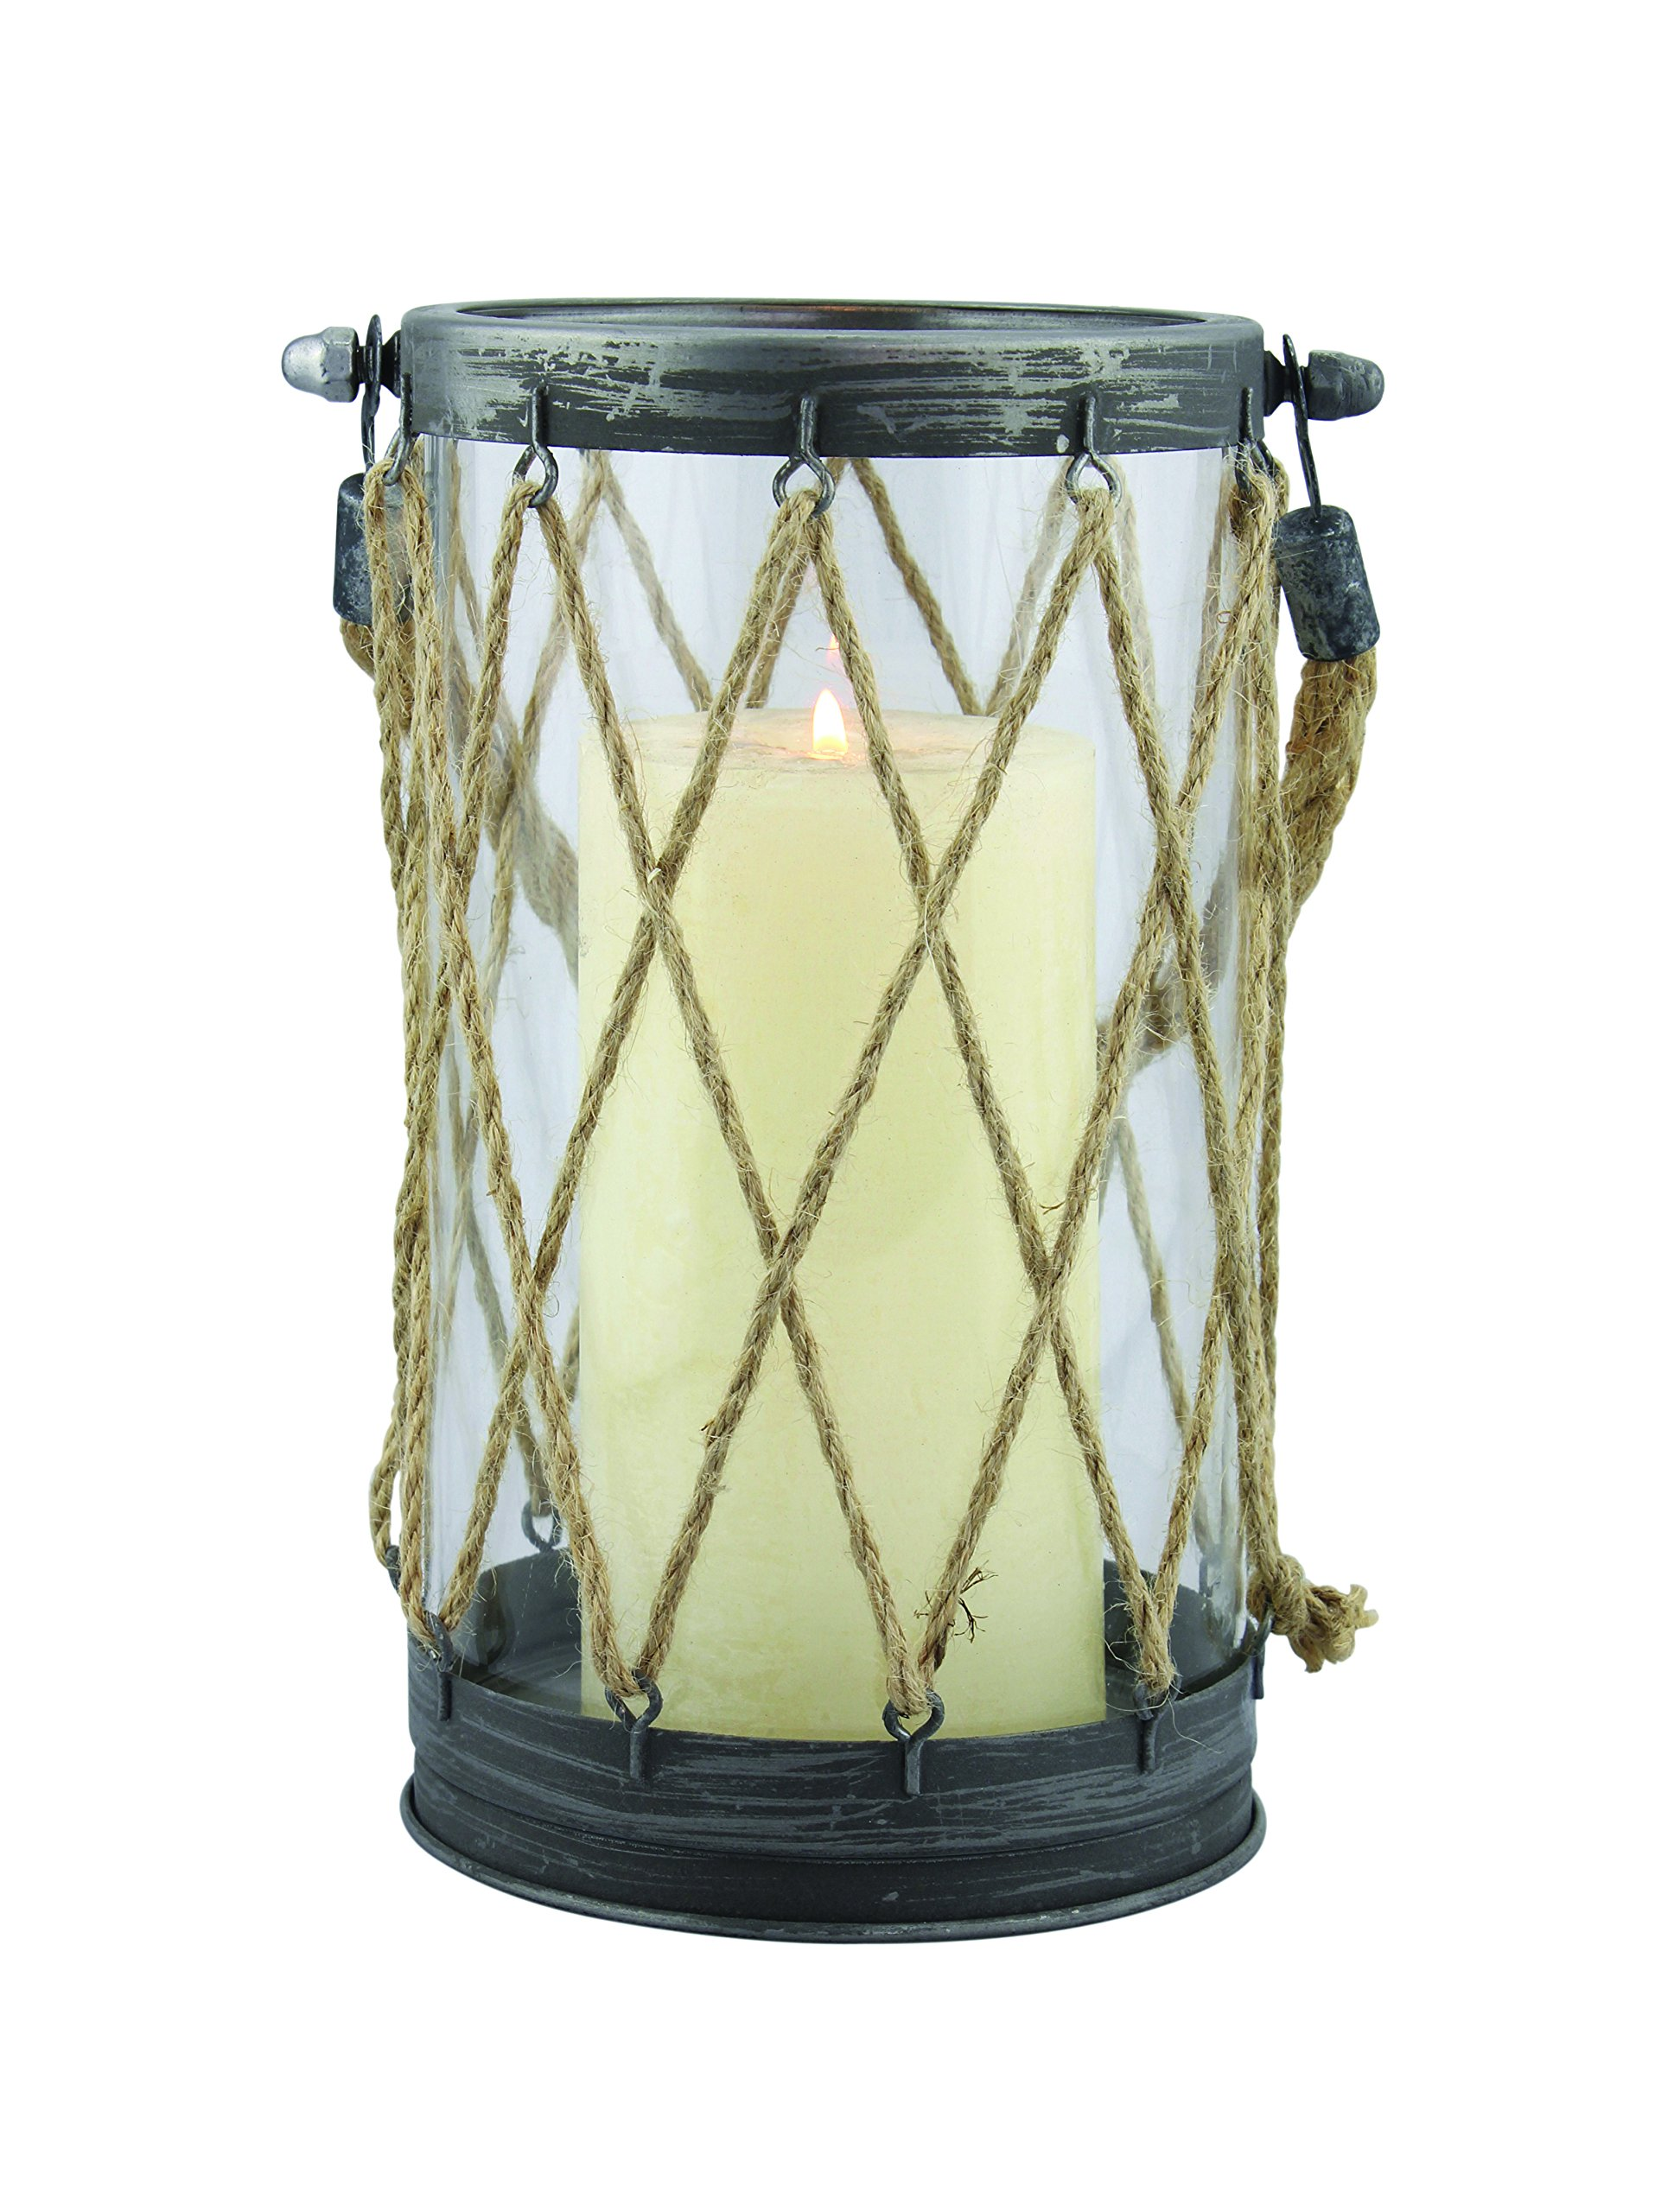 Stonebriar Nautical Antique Zinc and Twine Cylinder Hurricane Candle Lantern with Rope Handle, Coastal Decor Accents for Weddings, Birthdays, Events, or Everyday Home Decor, Tall